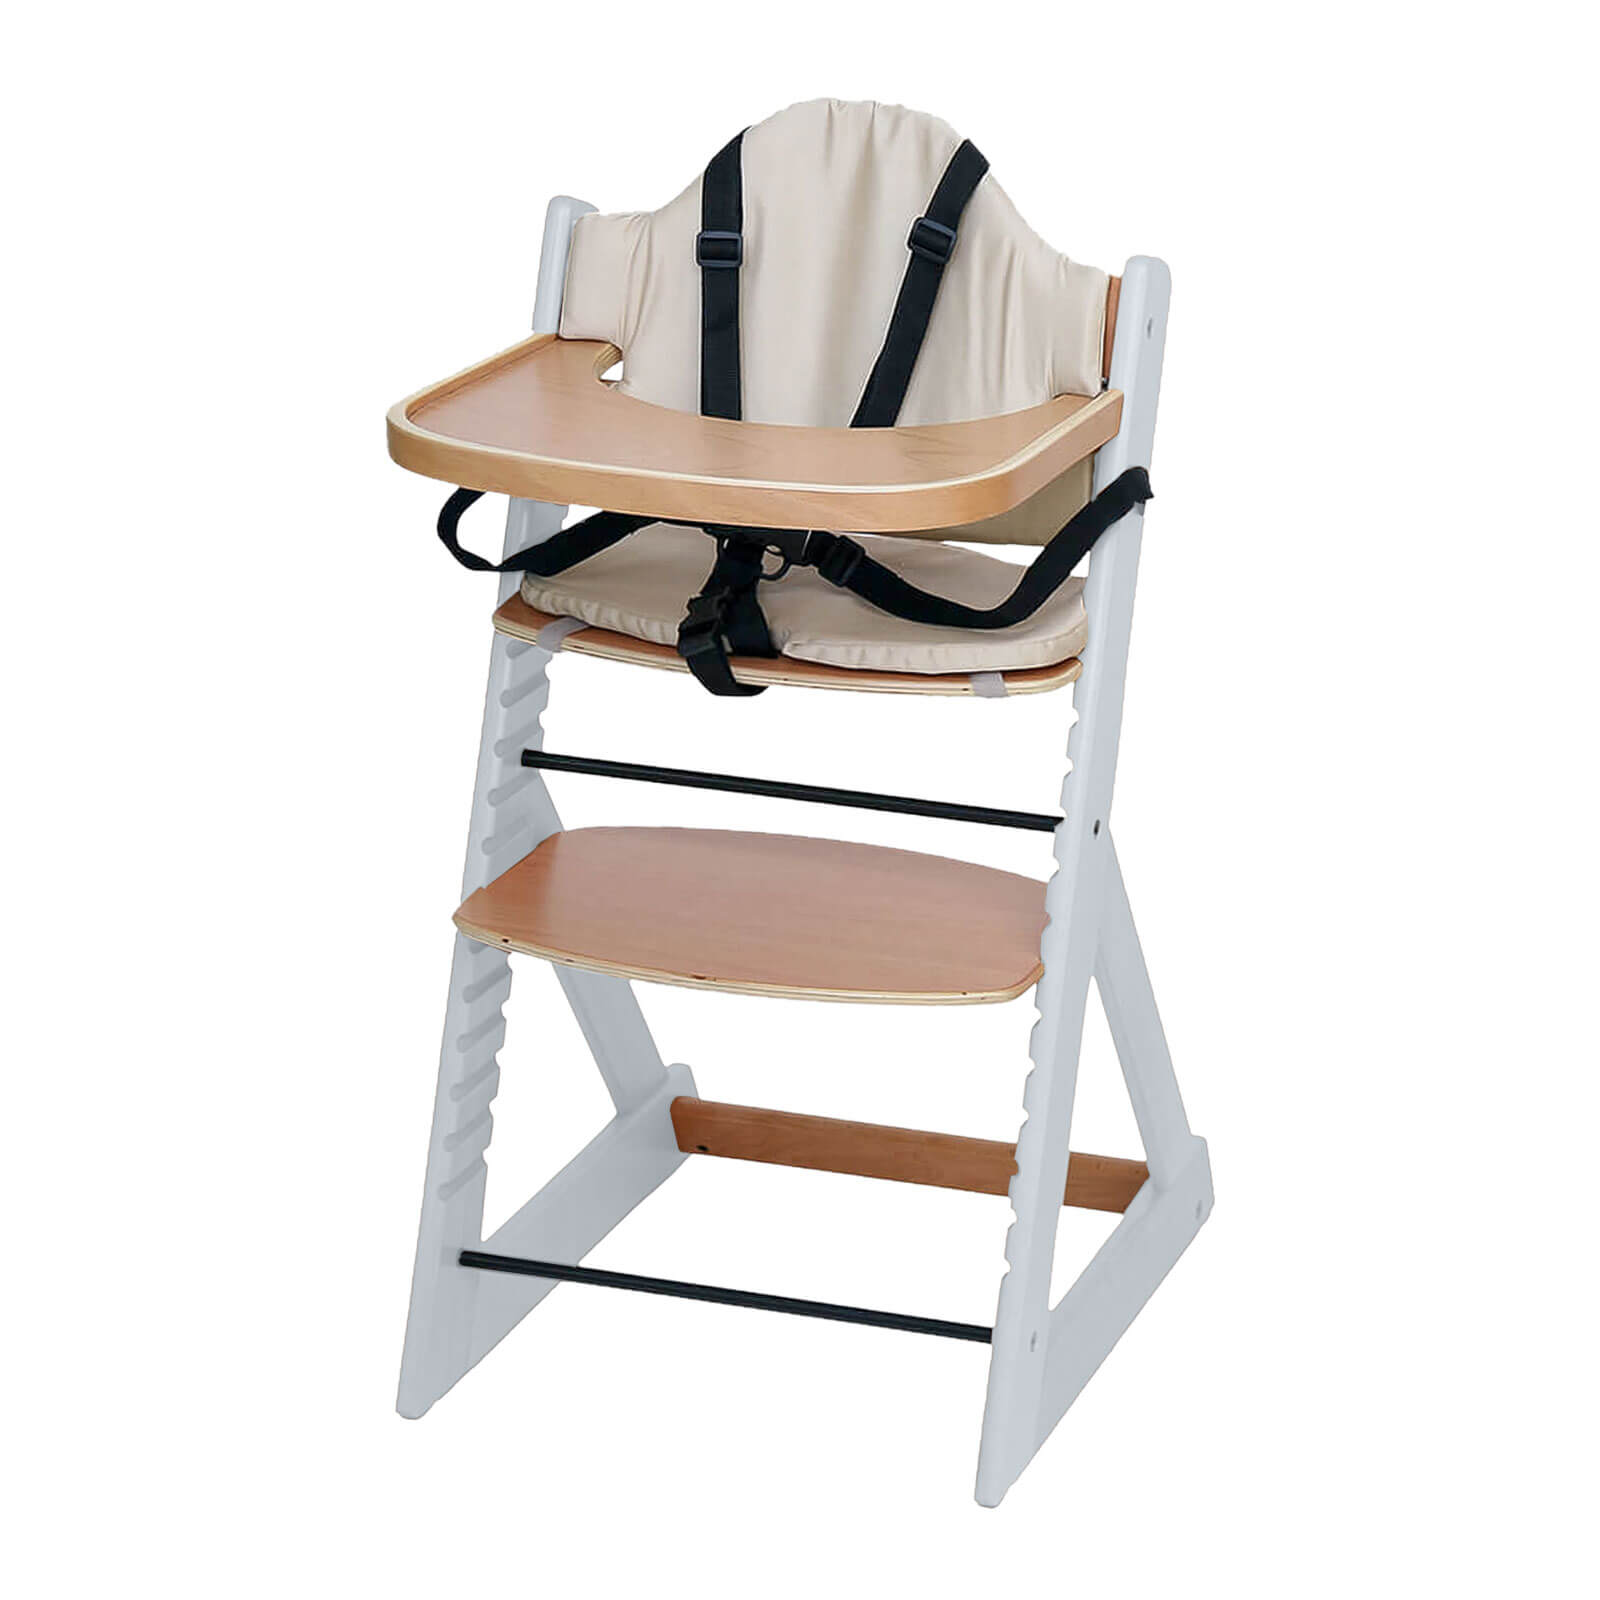 Wooden Baby High Chair | 3in1 Highchair with Tray and Bar ...